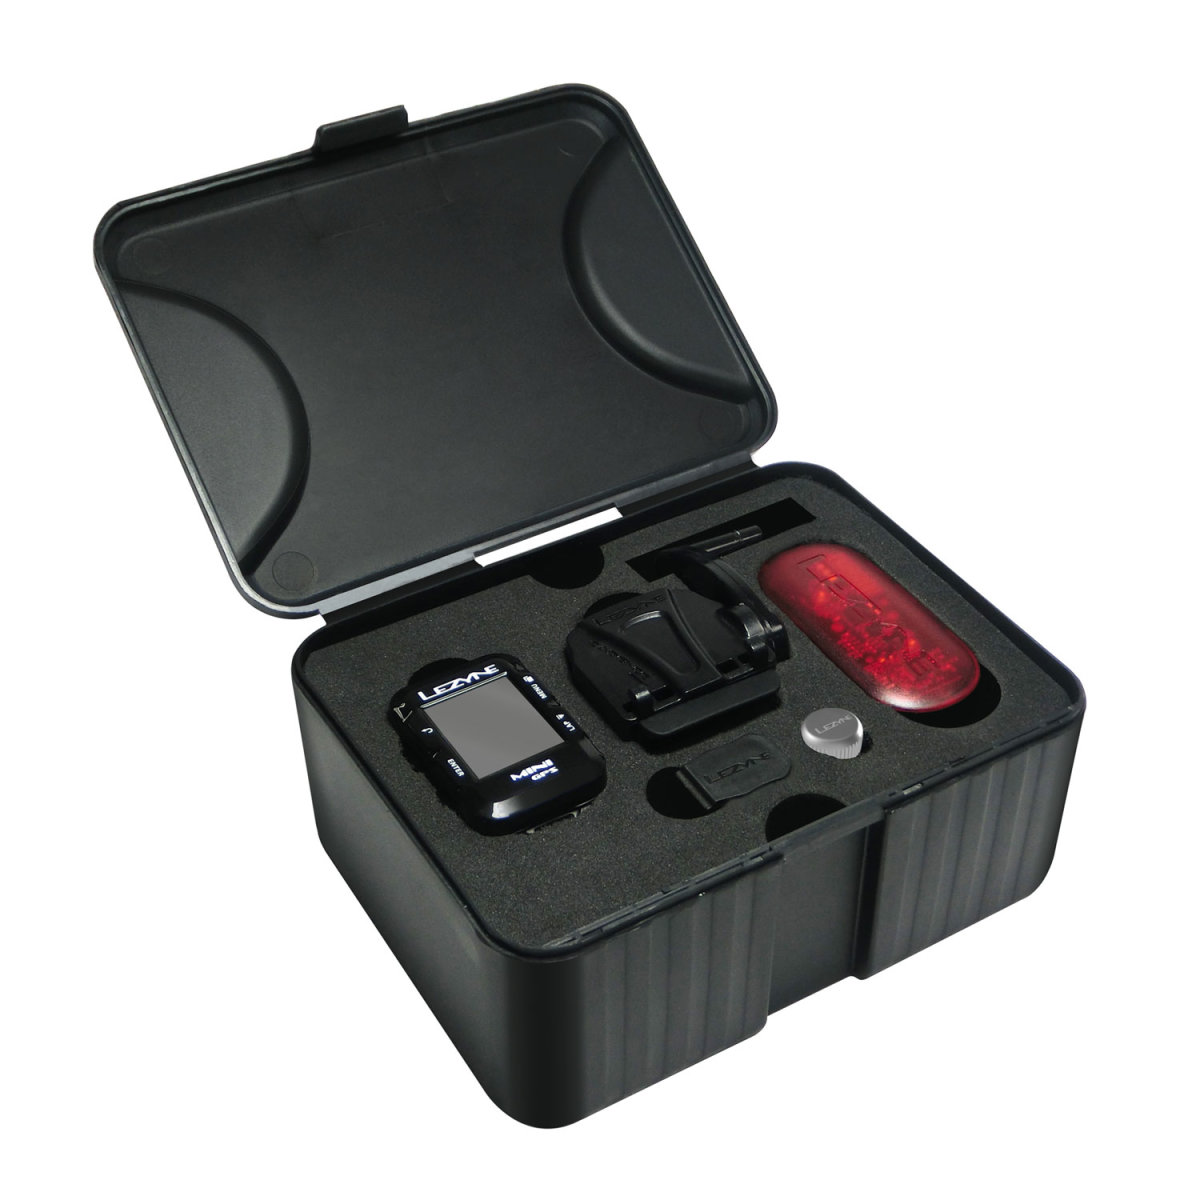 Компьютер Lezyne Mini GPS HR Loaded черный 11 Mini GPS HR Loaded 4712805 987269